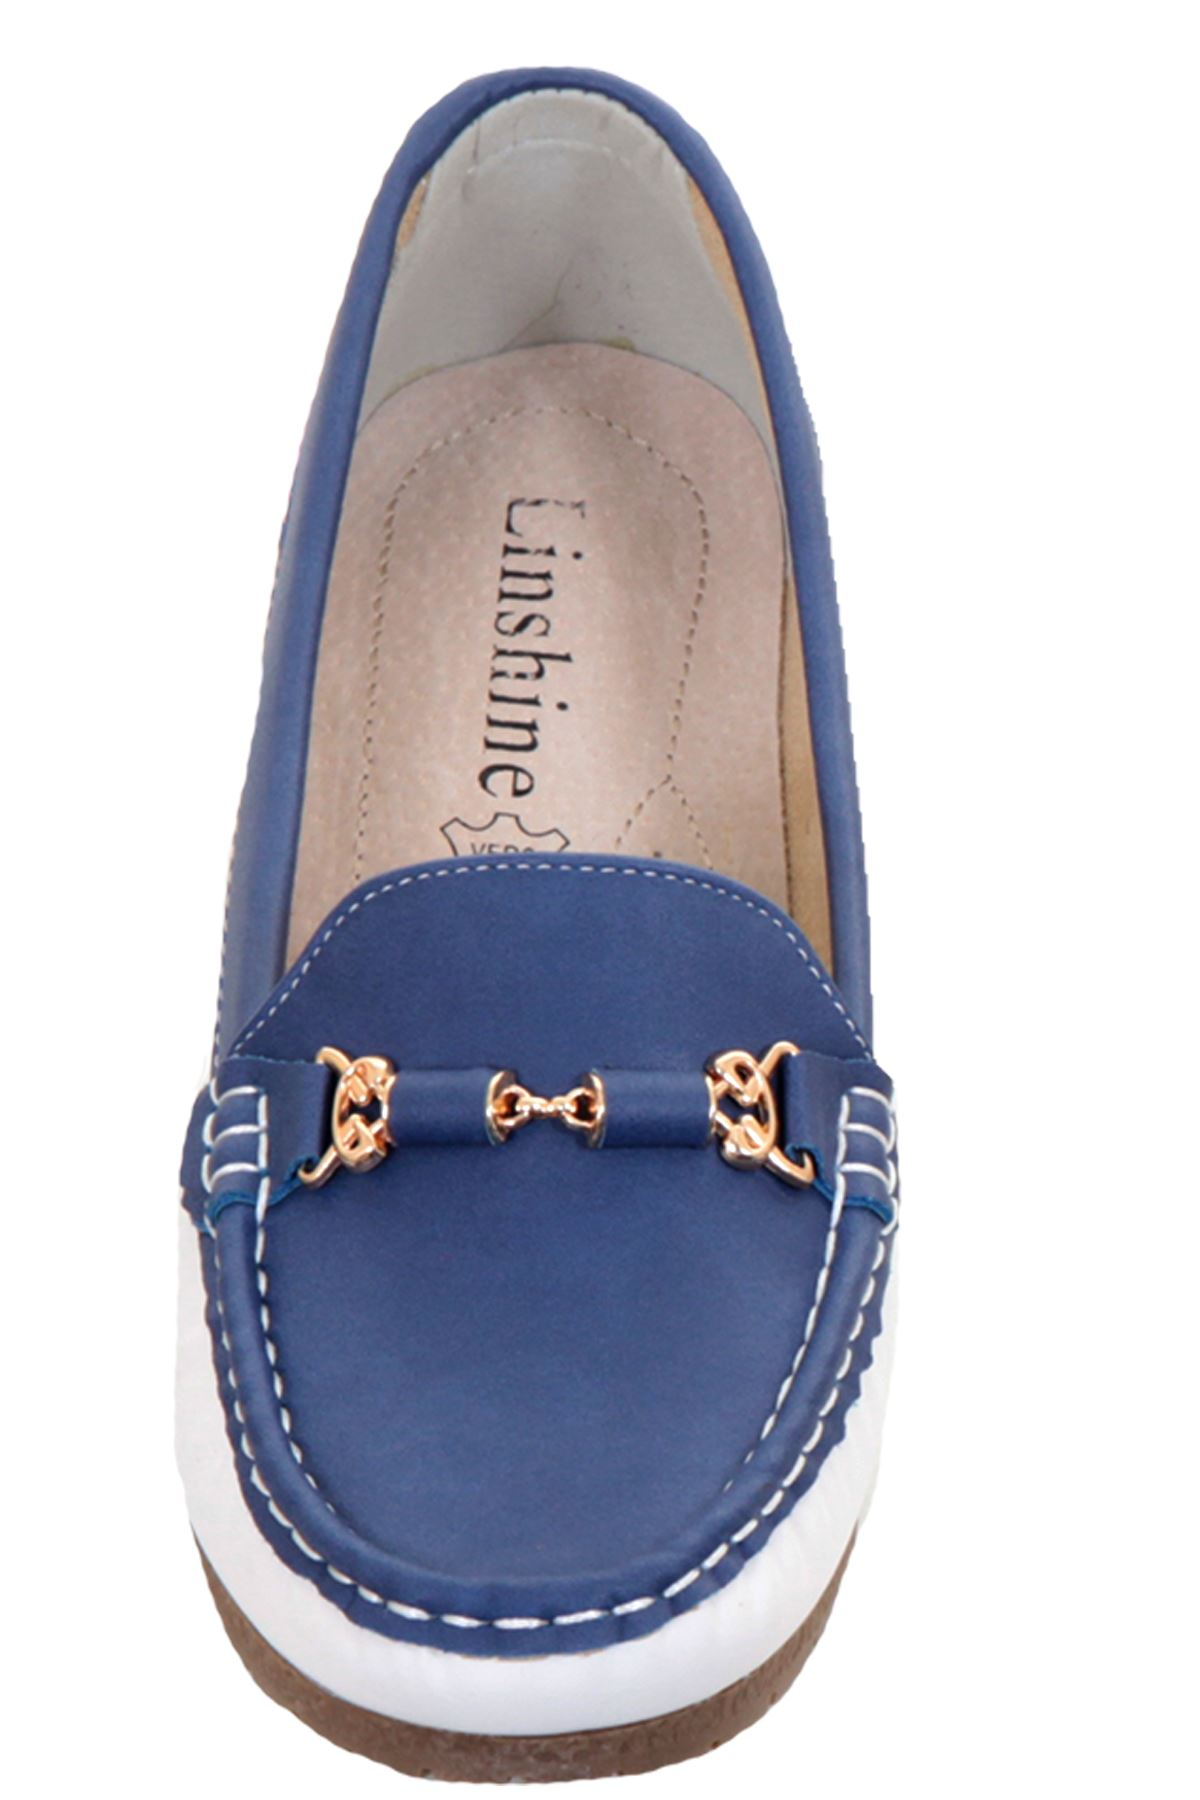 Ladies Contrast Colour Slip On Flat Gold Chain Moccasin Small Heel Loafer Shoes